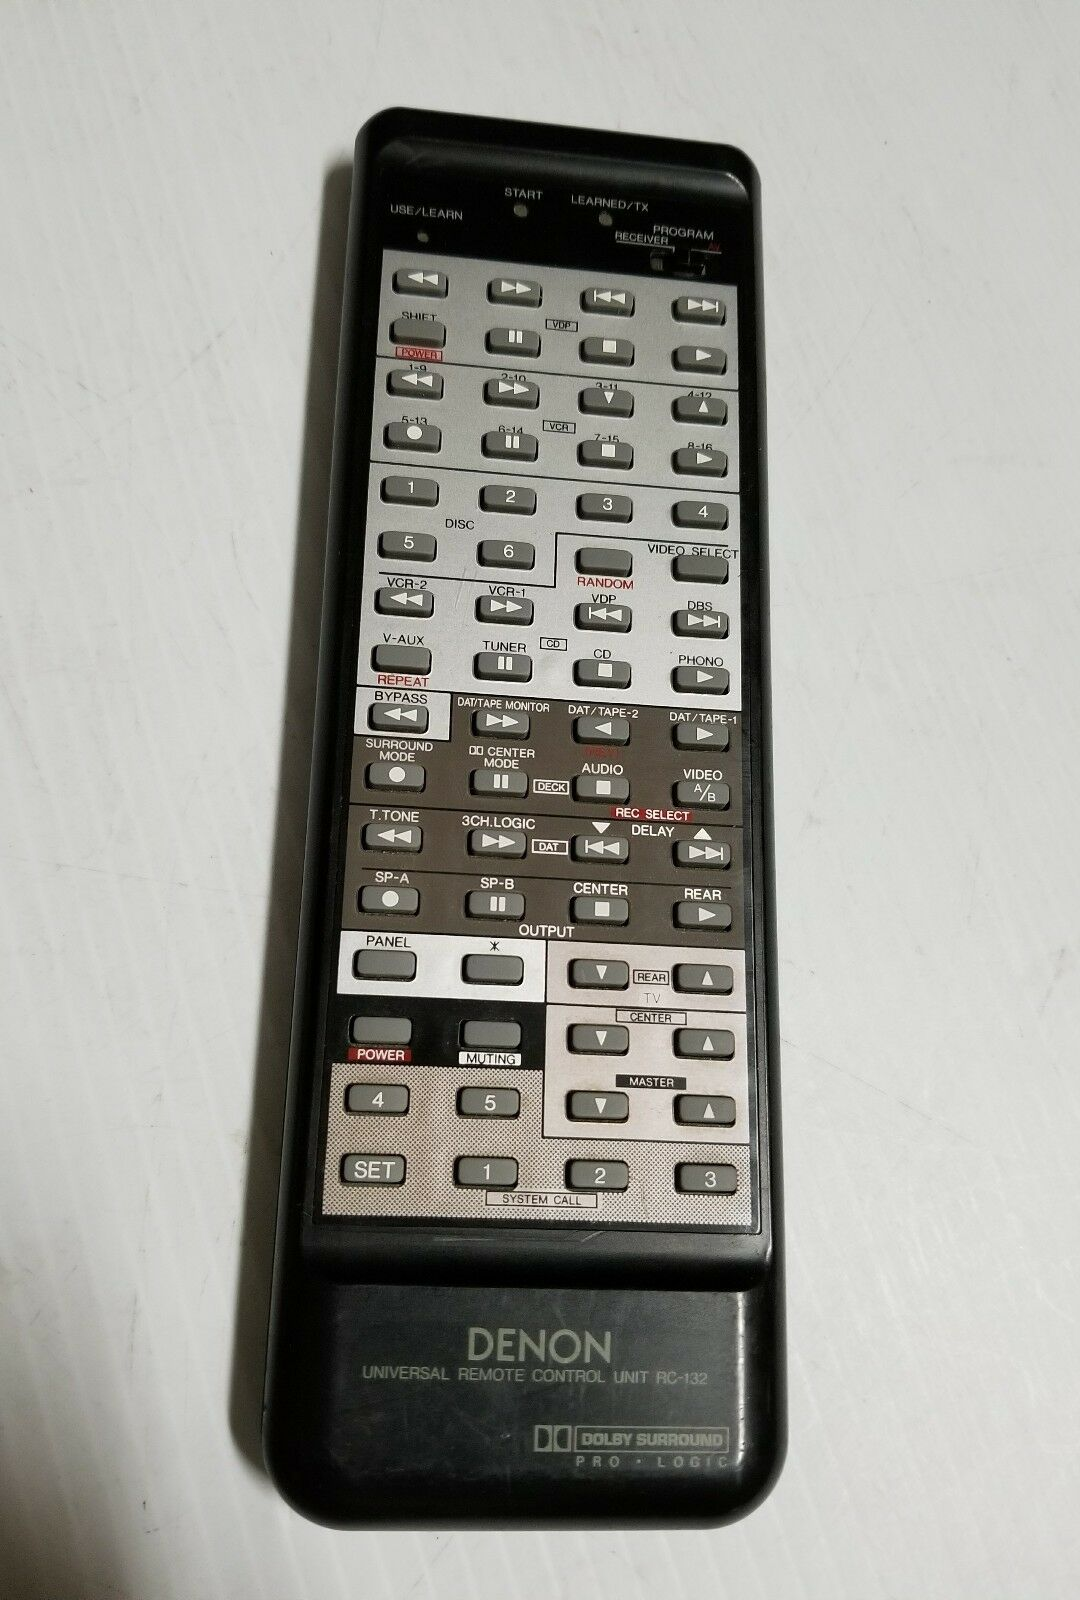 Denon RC-132 Audio/Video Receiver Remote Control AVR-1010 1 of 8Only 1  available See More